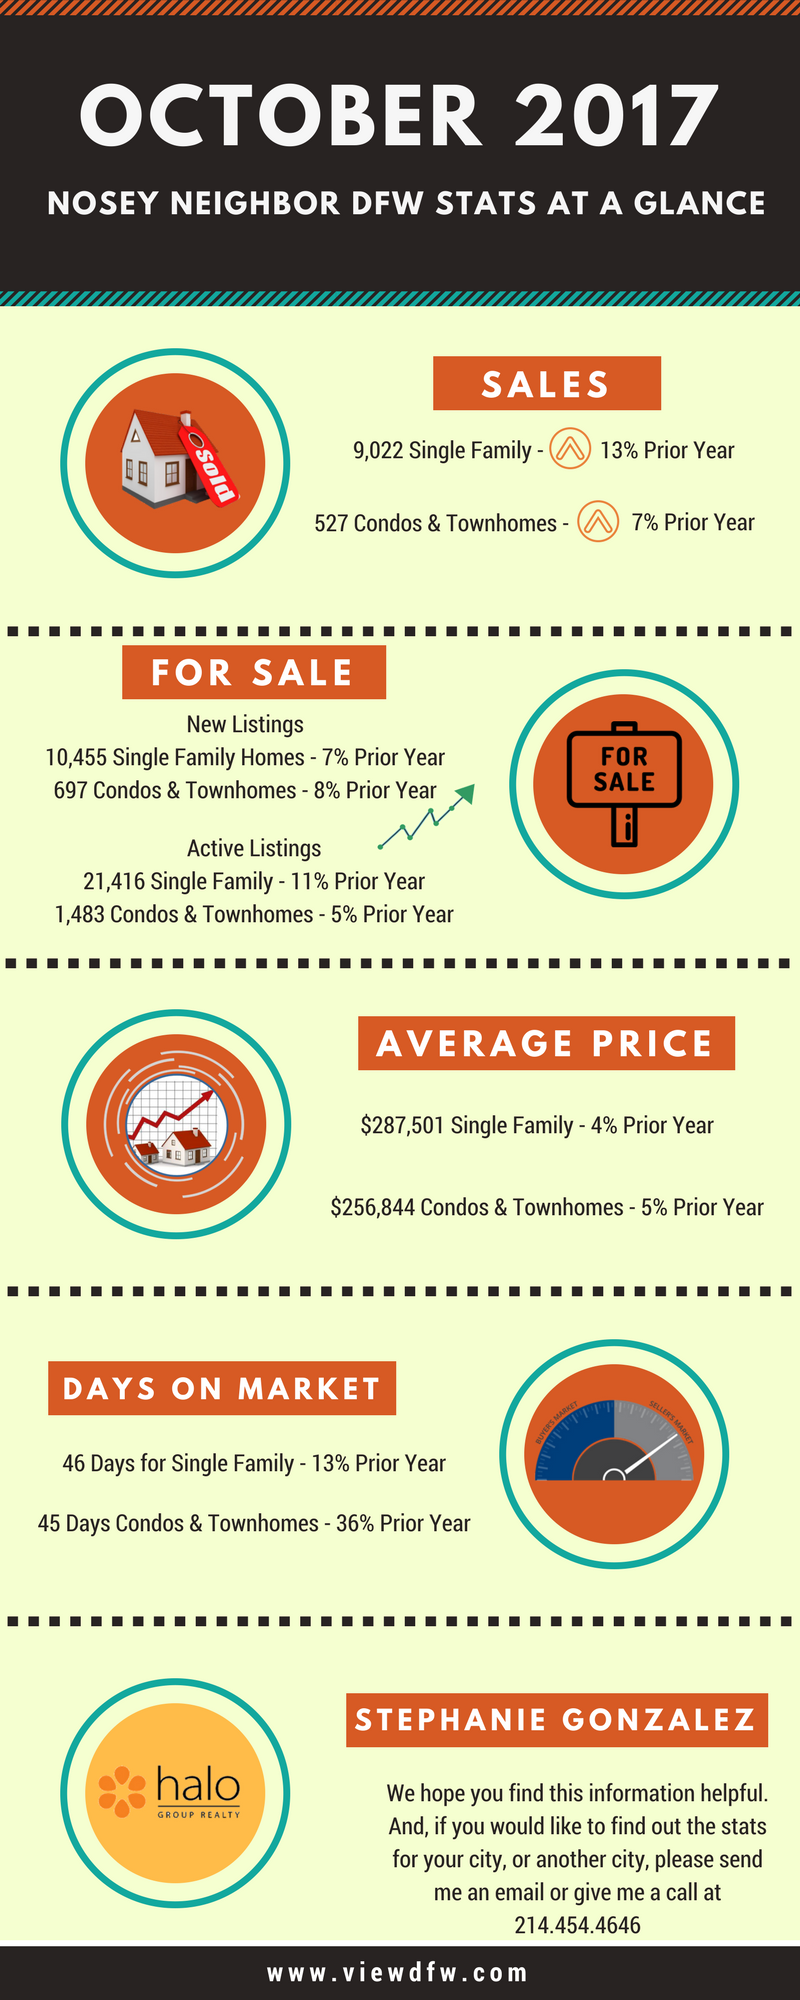 DFW October 2017 Home Stats